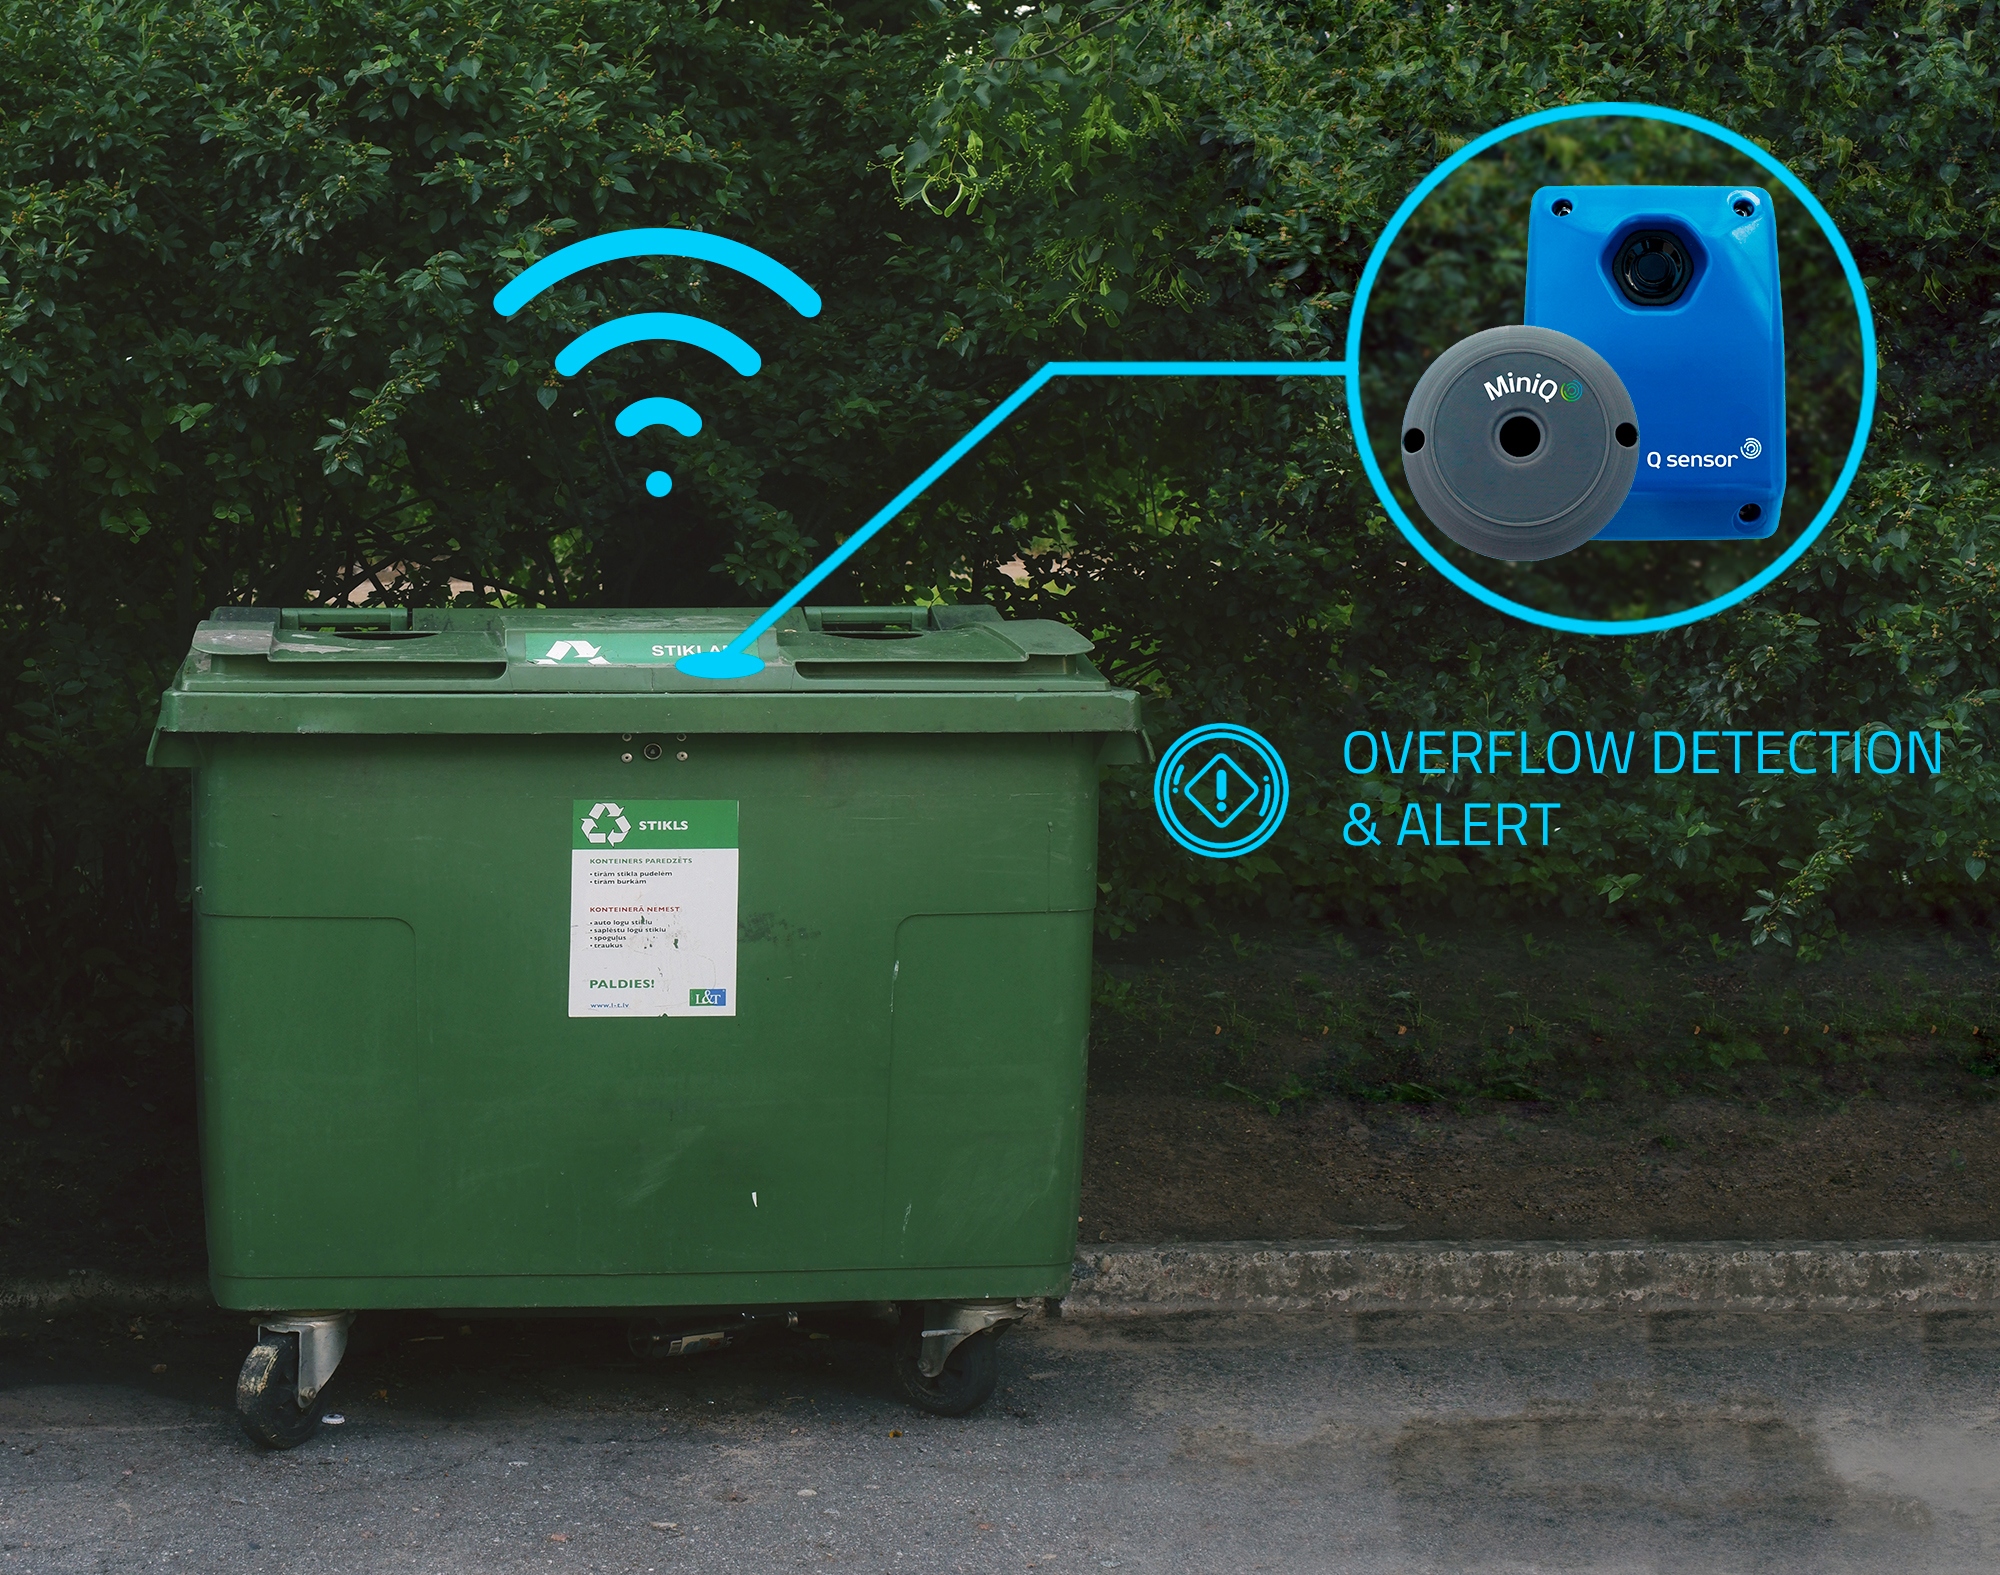 Quamtra Smart Waste Management